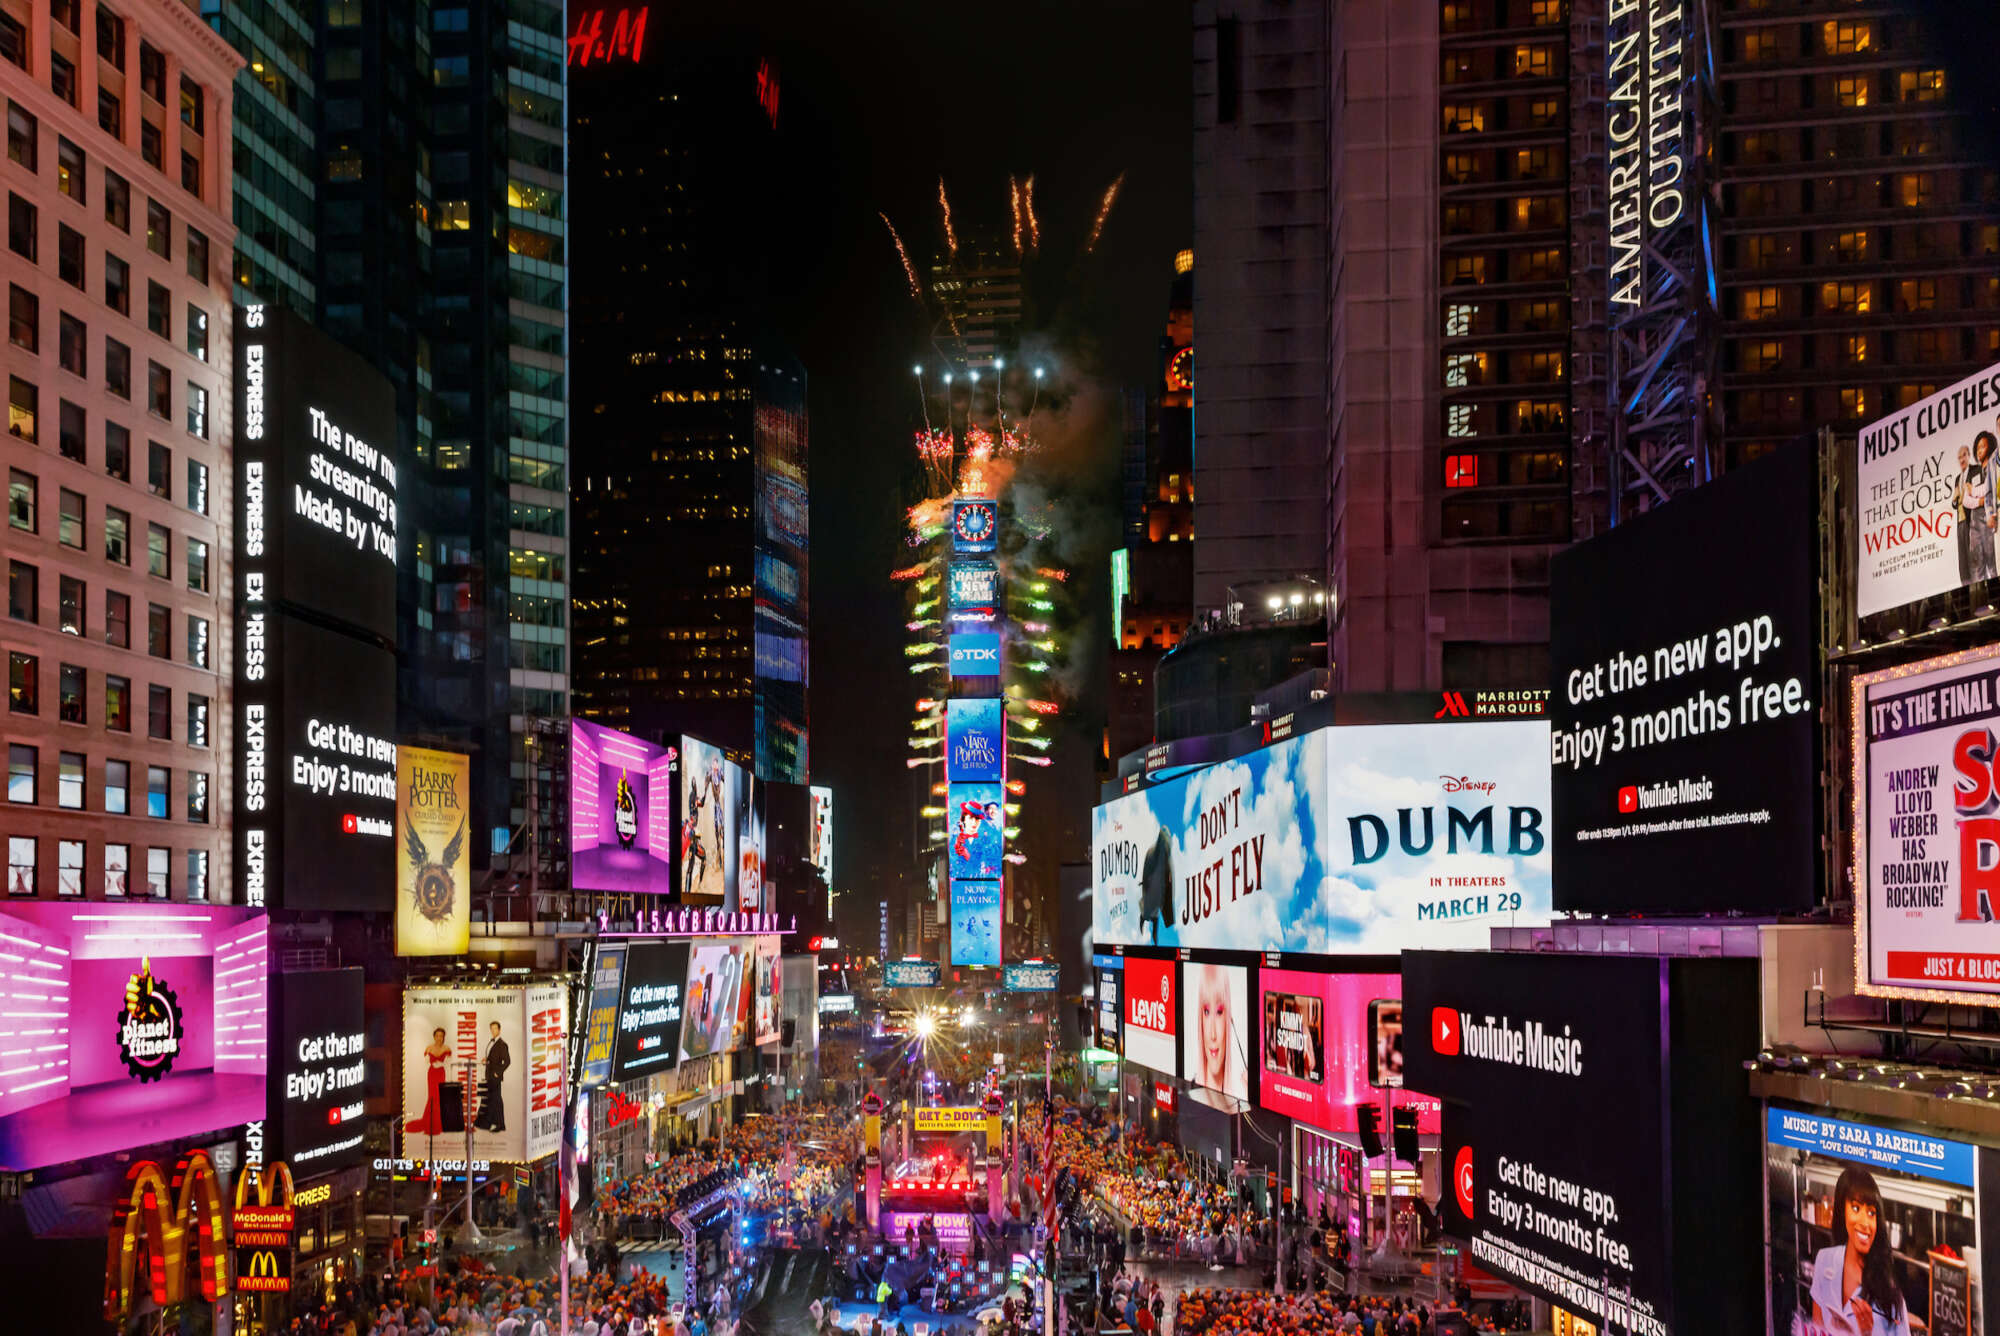 One Times Square at New Years with people in the crowd below and fireworks exploding from the building.